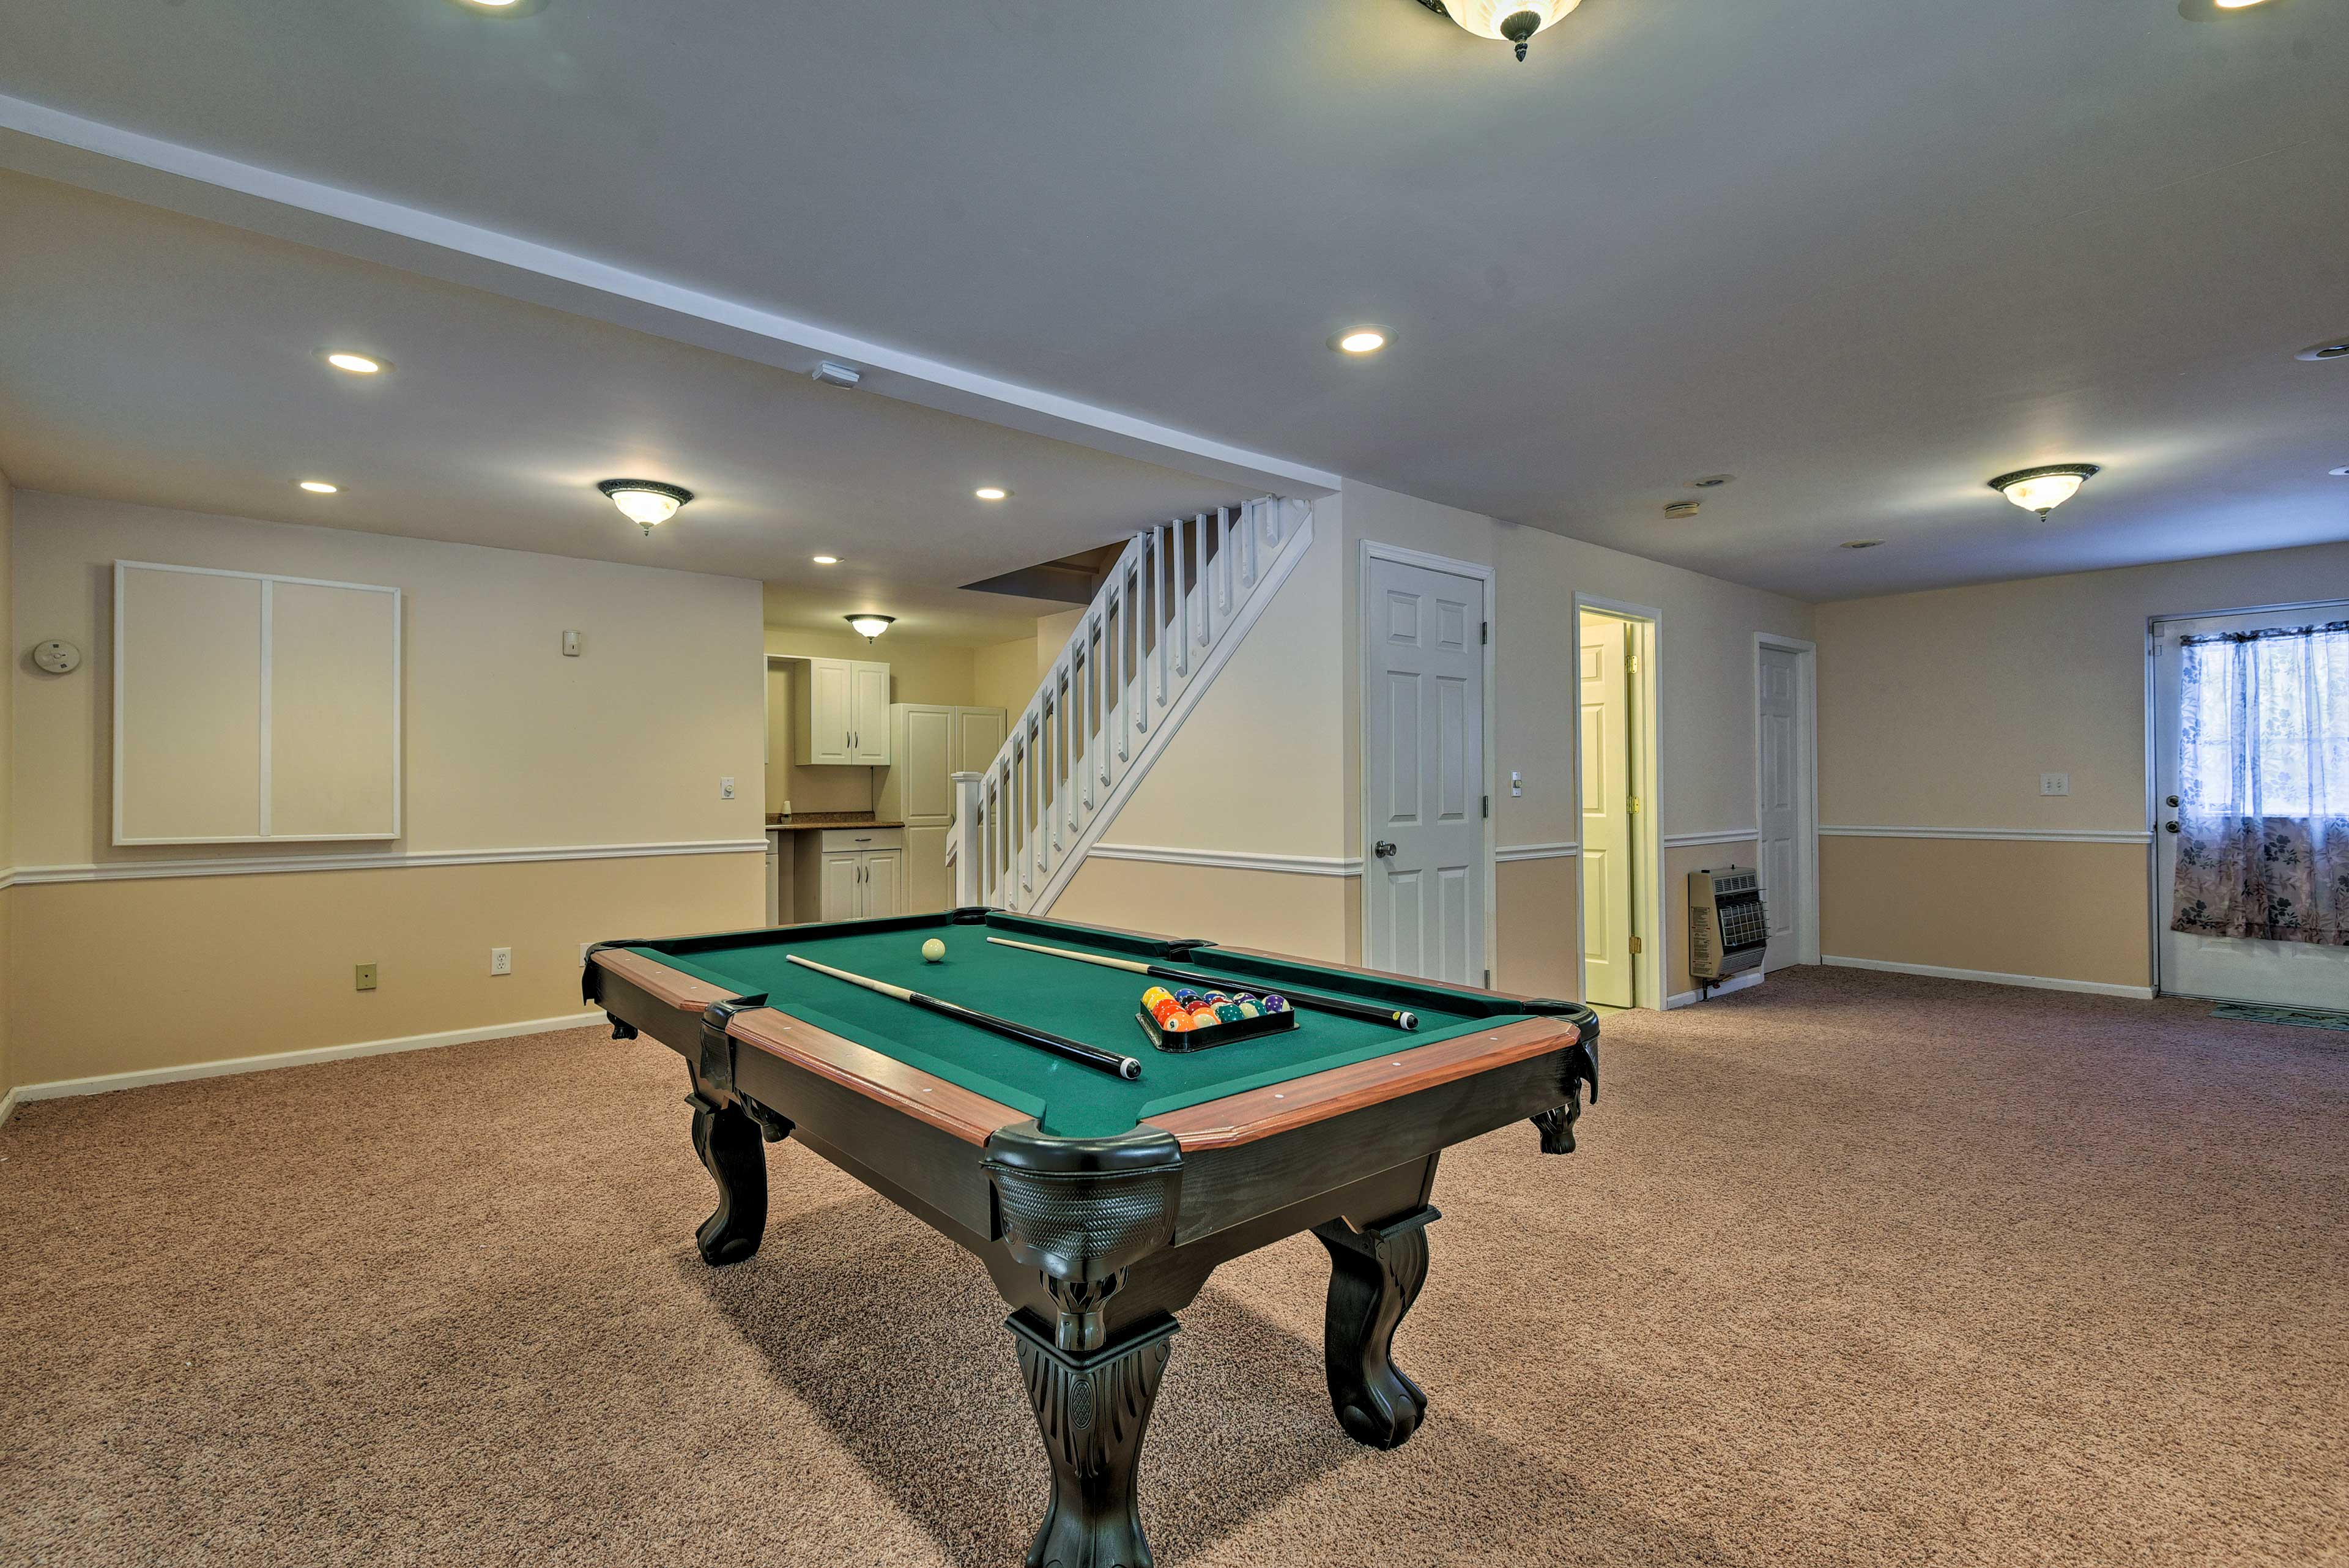 Play a game of pool at the table downstairs.